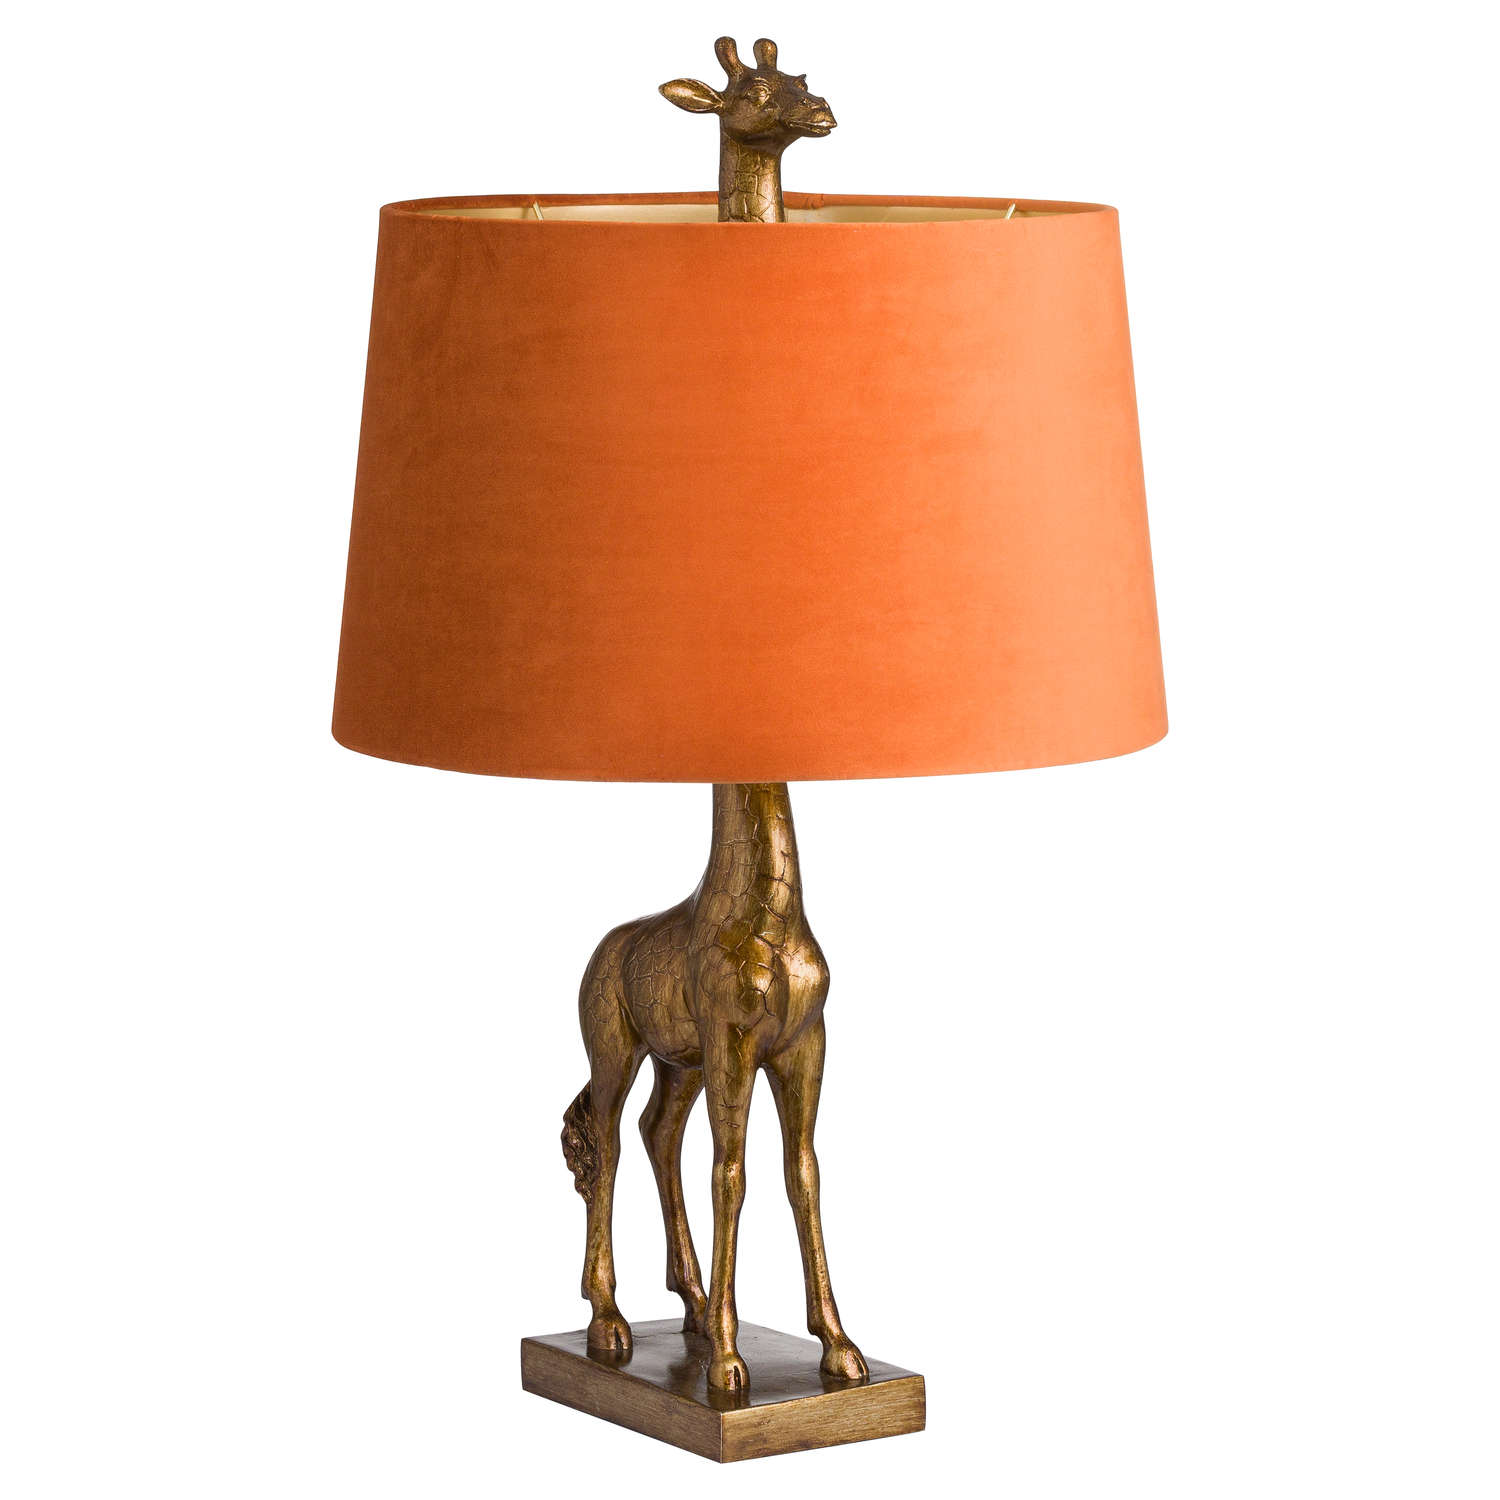 Antique Gold Giraffe Table Lamp + Burnt Orange Velvet Shade with Gold Lining